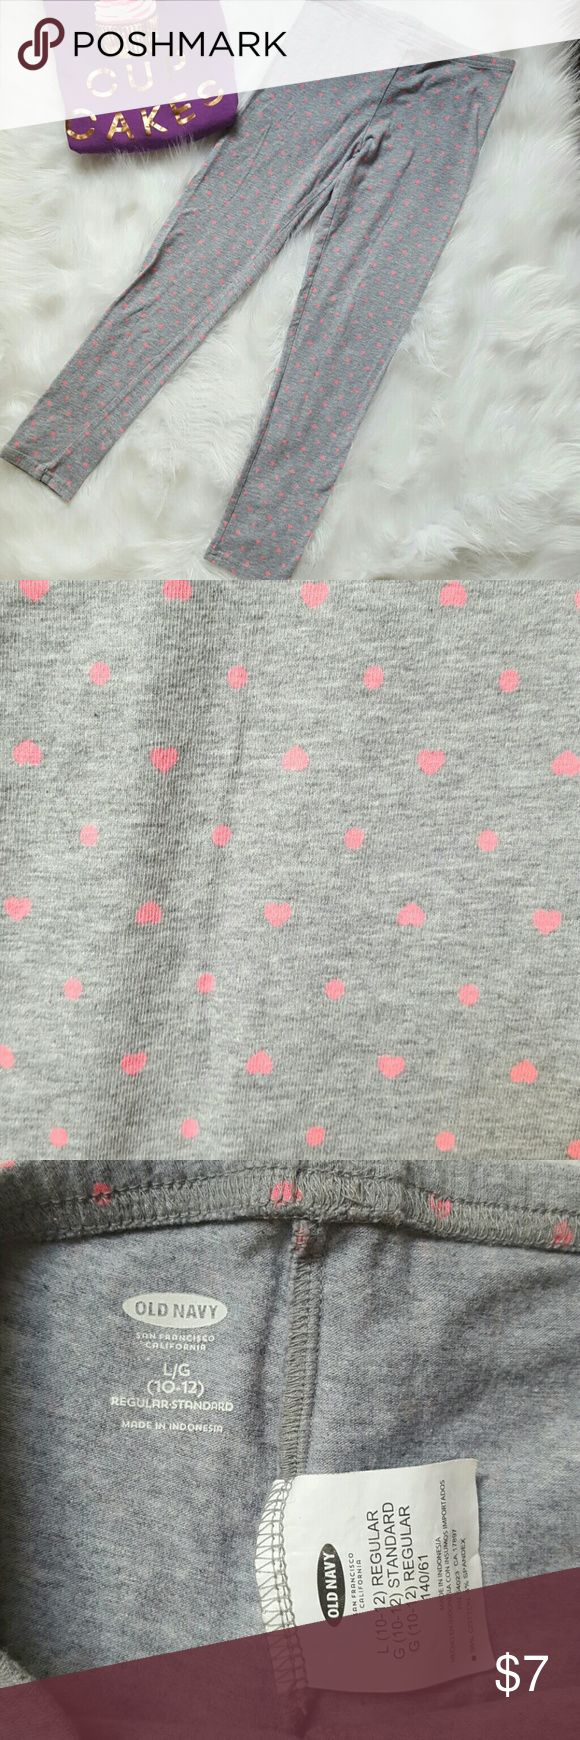 Heart & polka dot leggings EUC girls large Cute gray leggings with tiny bright pink hearts and polka dots. Old Navy Large (10/12) EUC. Worn once at most. Bundle with the top, also in separate listing to save and complete a sweet look! Old Navy Bottoms Leggings